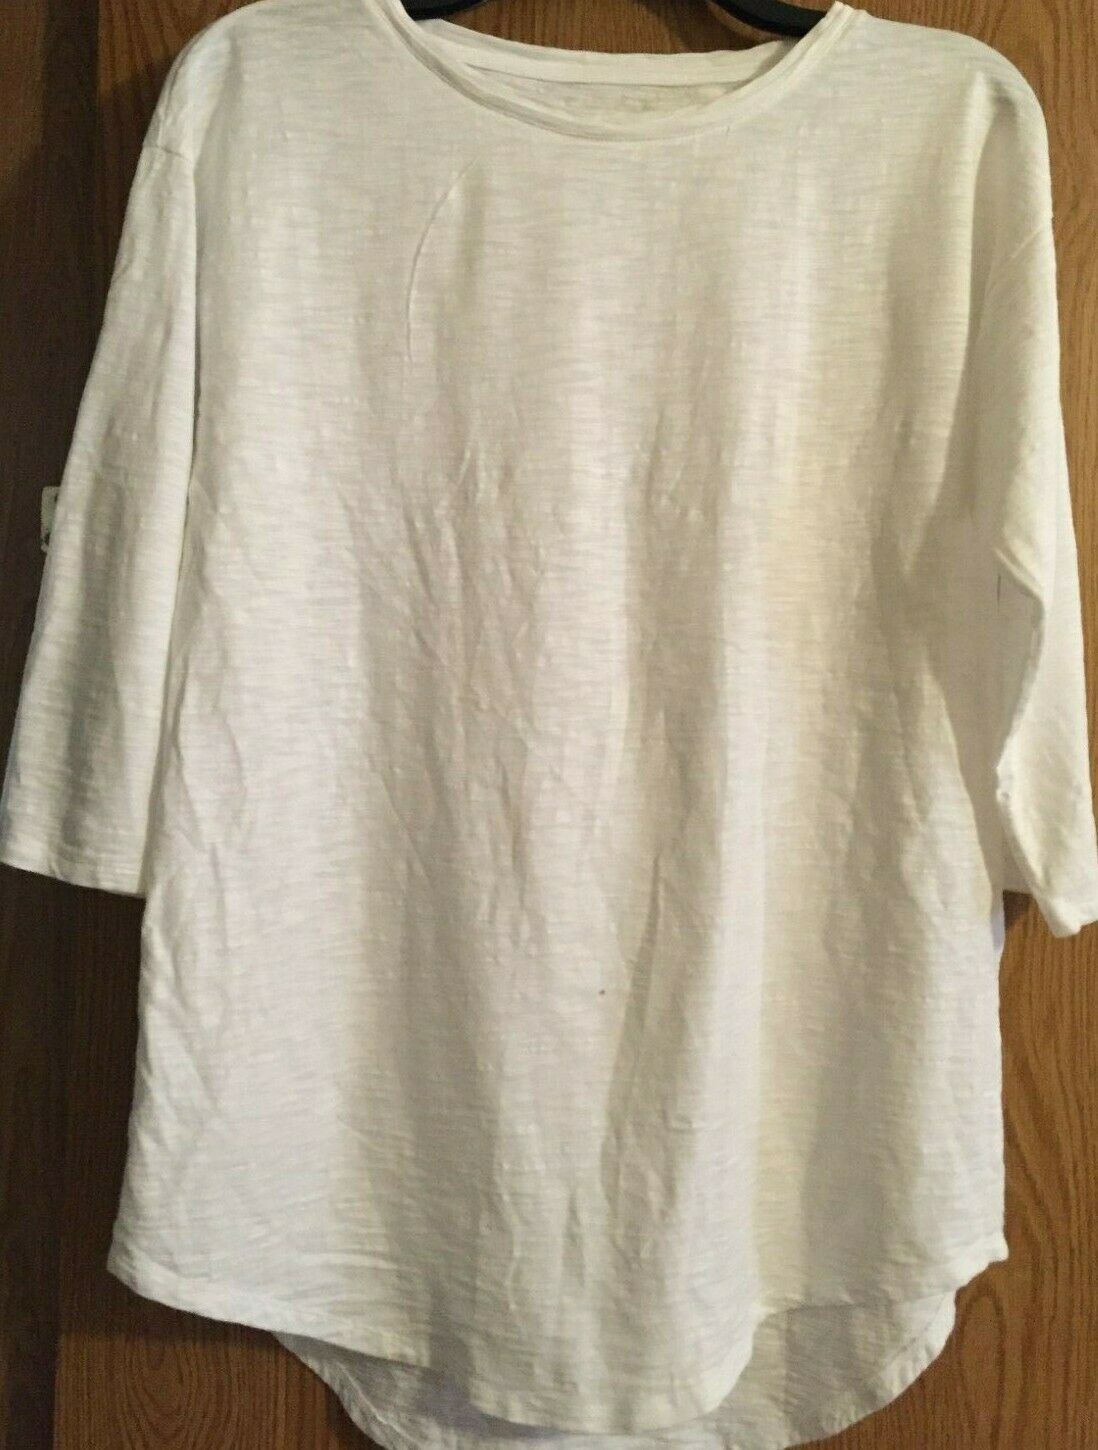 Primary image for CHICO'S  the  ultimate tee Size 0 white  3/4 Sleeve 60% Cotton  40% Modal